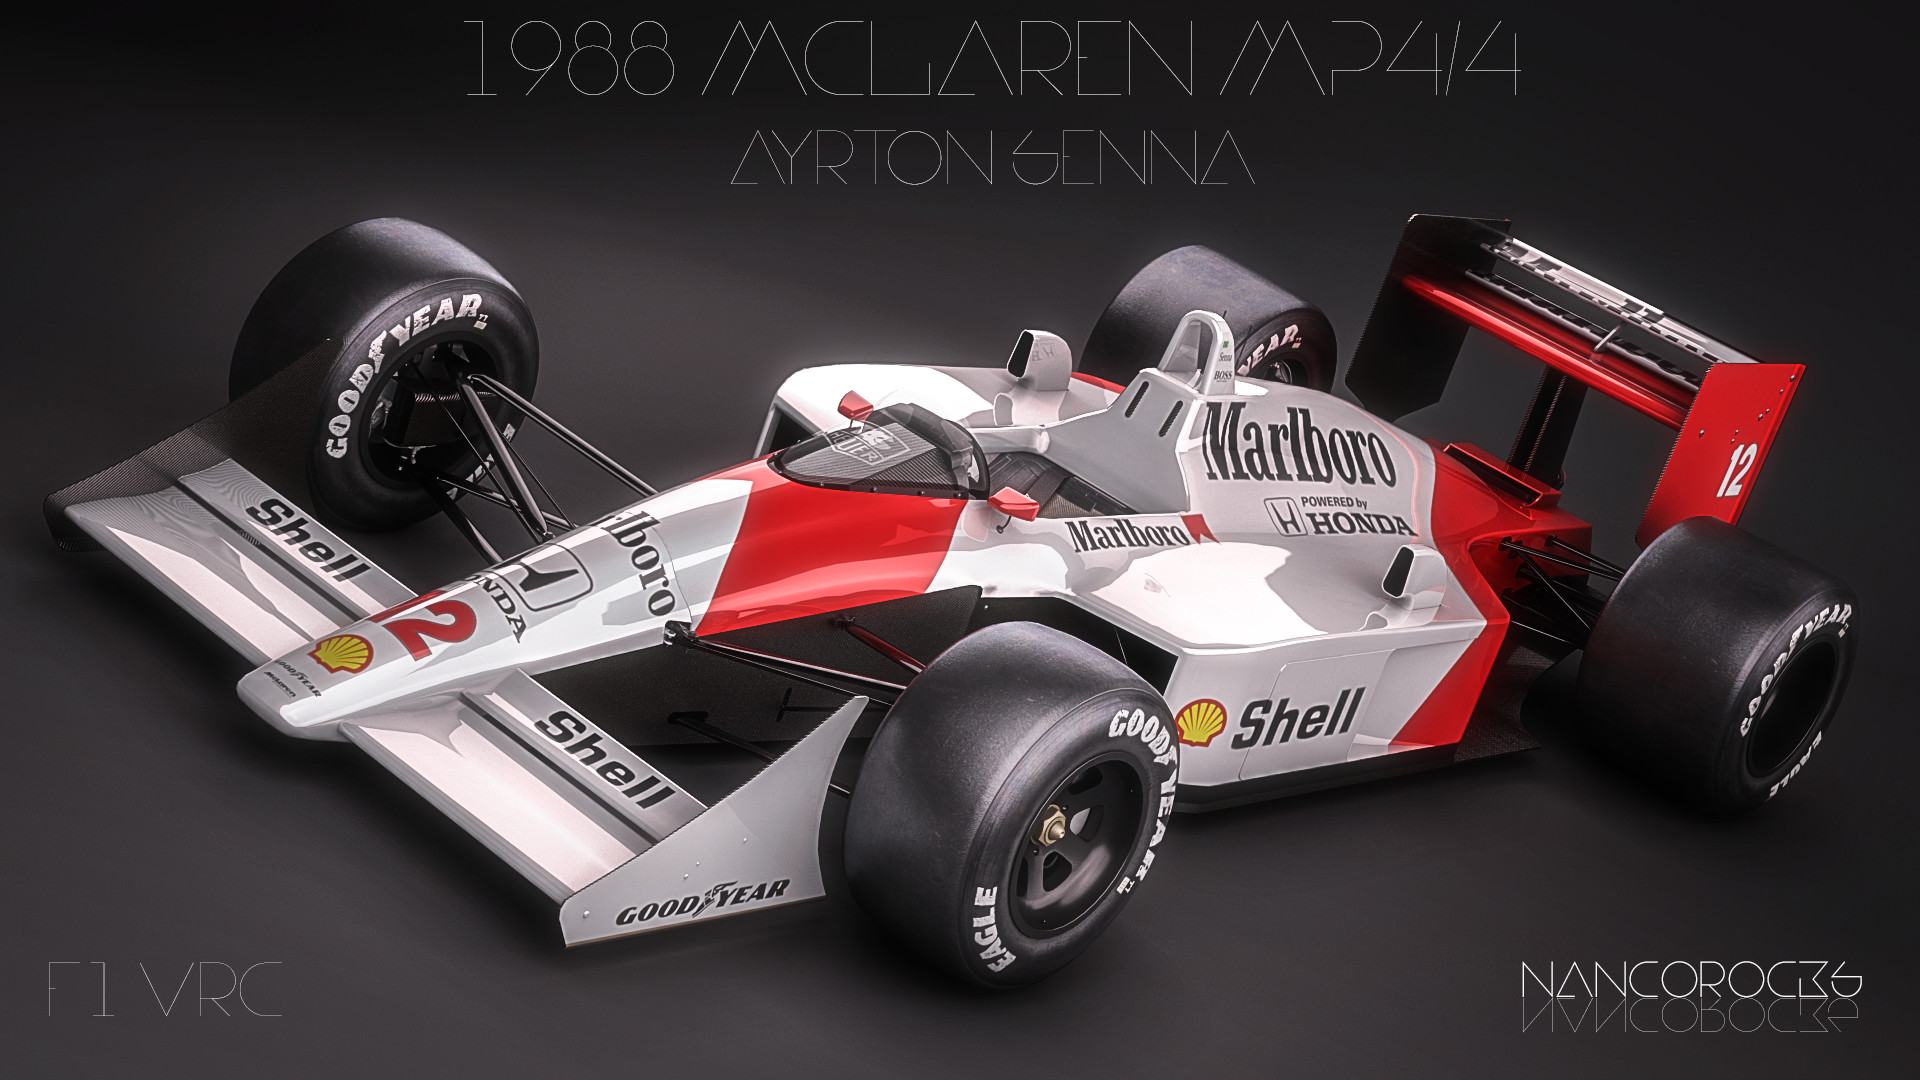 zoki nanco - nancorocks - - 1988 mclaren mp4  4